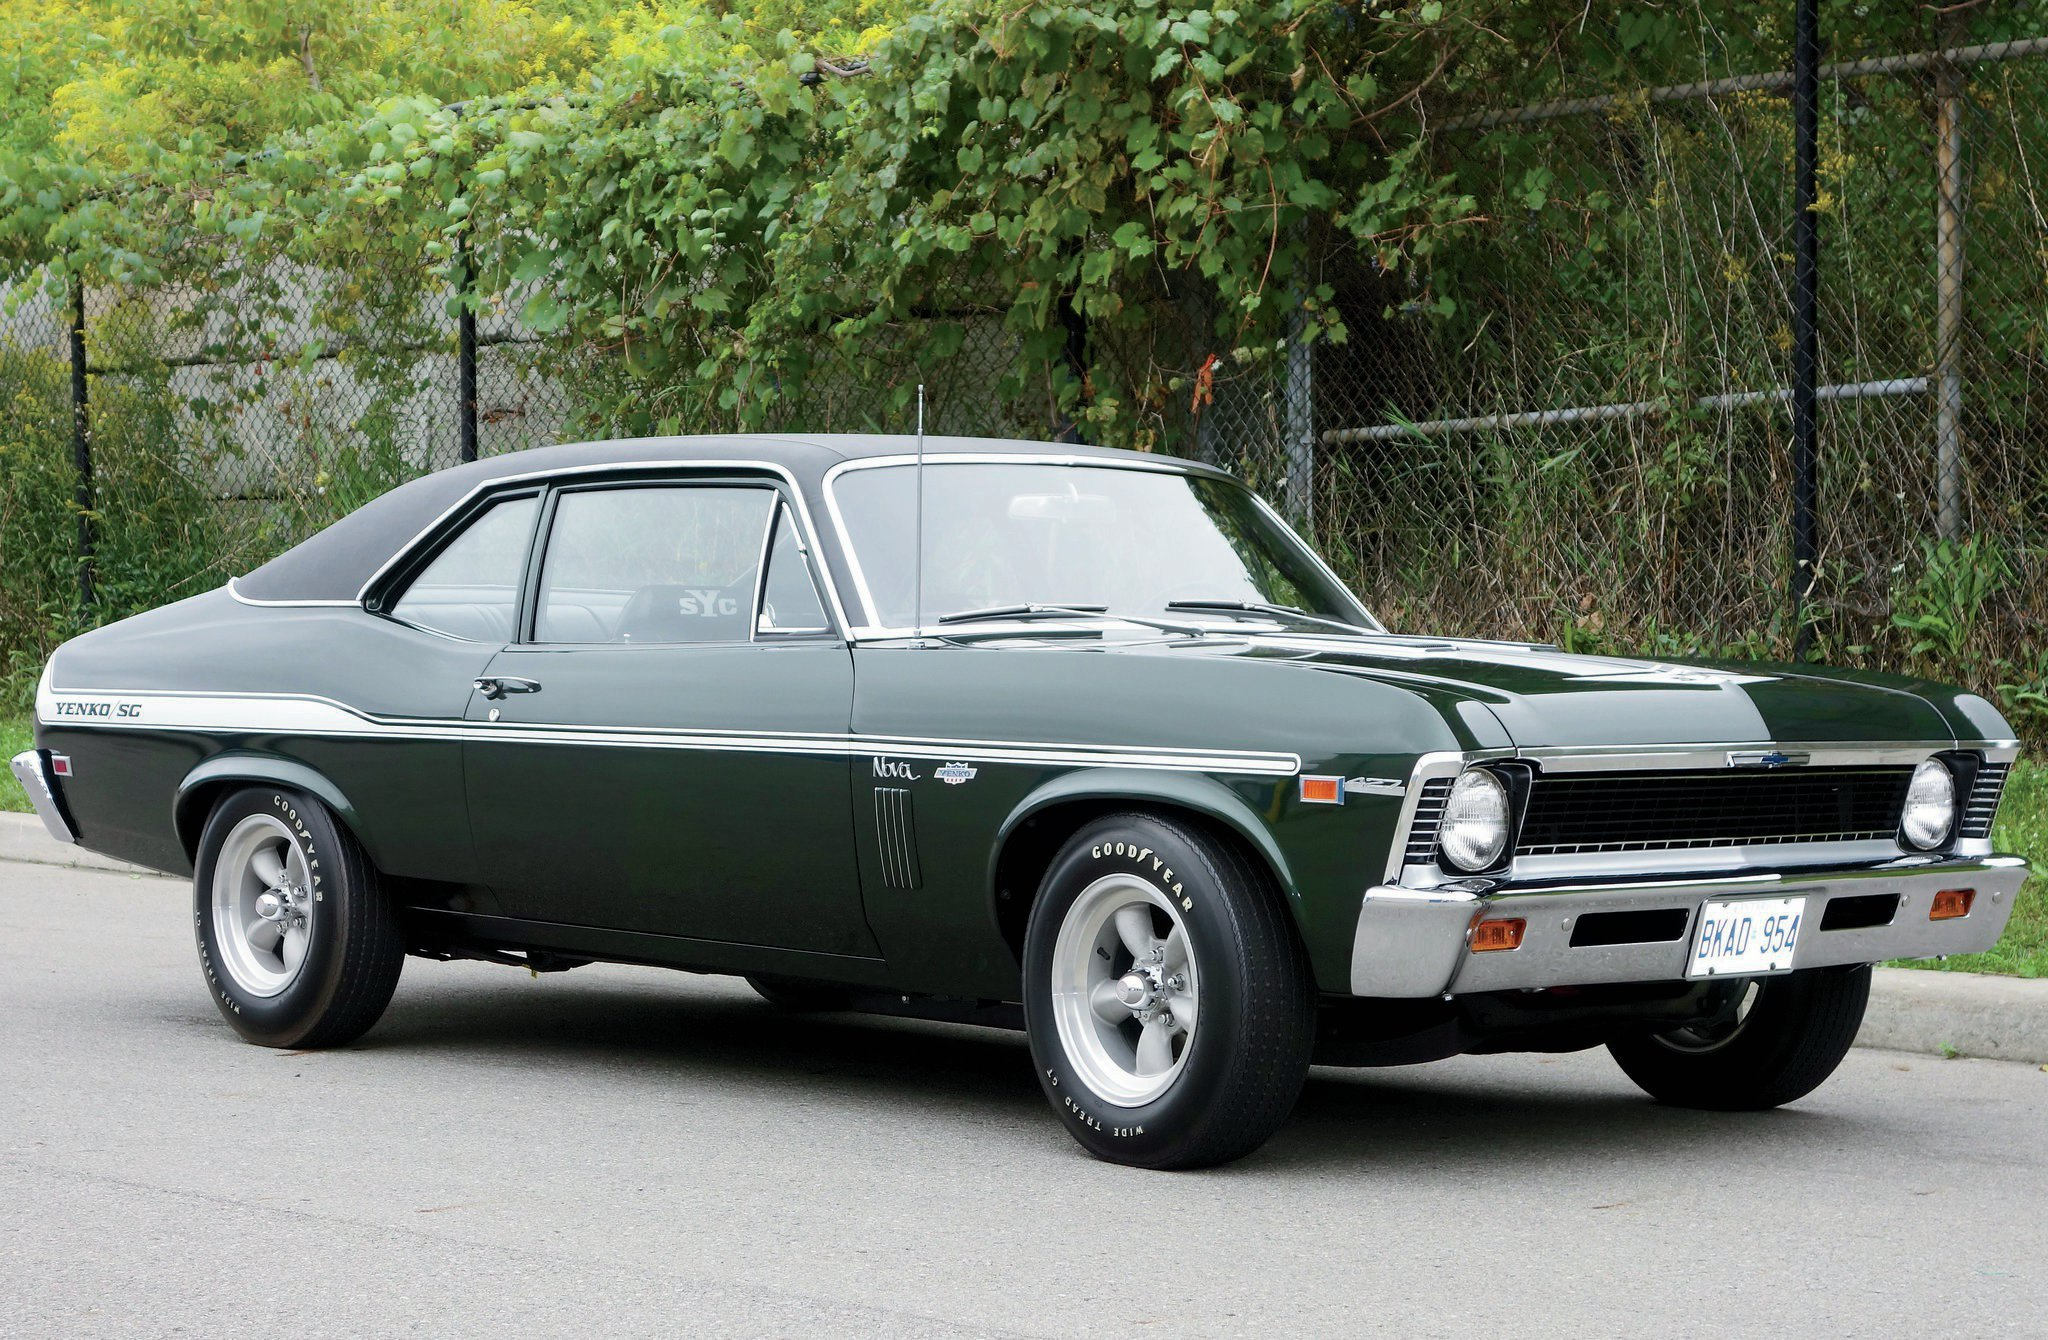 Compared to the Yenko Deuce made a year later, 1969 Yenko/SC 427 Novas are incredibly rare. Though it is reported that Don Yenko ordered about 38 of the cars to convert, fewer than 10 are known to exist.